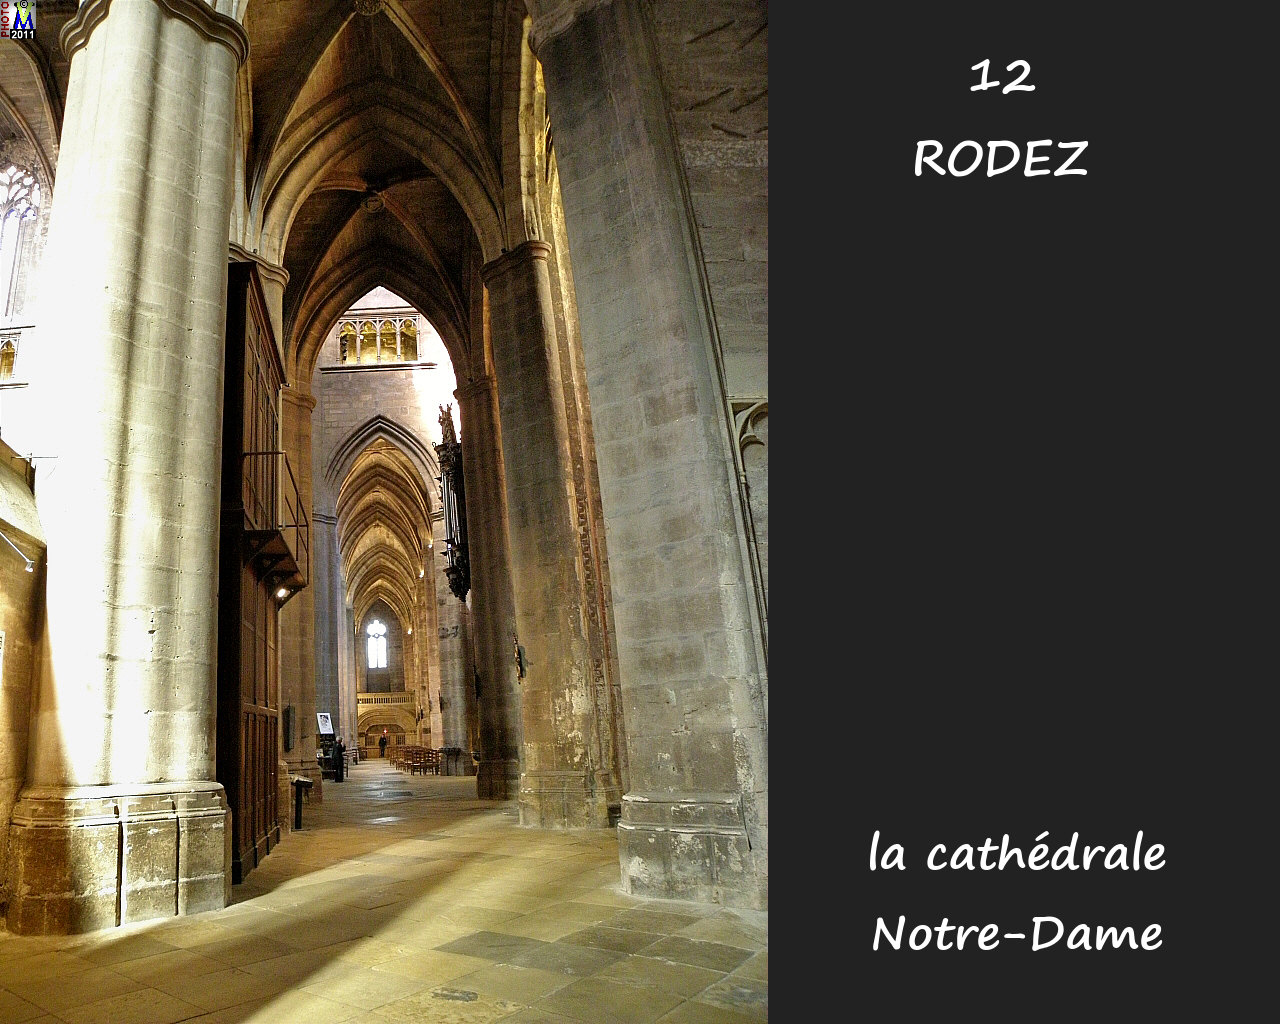 12RODEZ_cathedrale_252.jpg